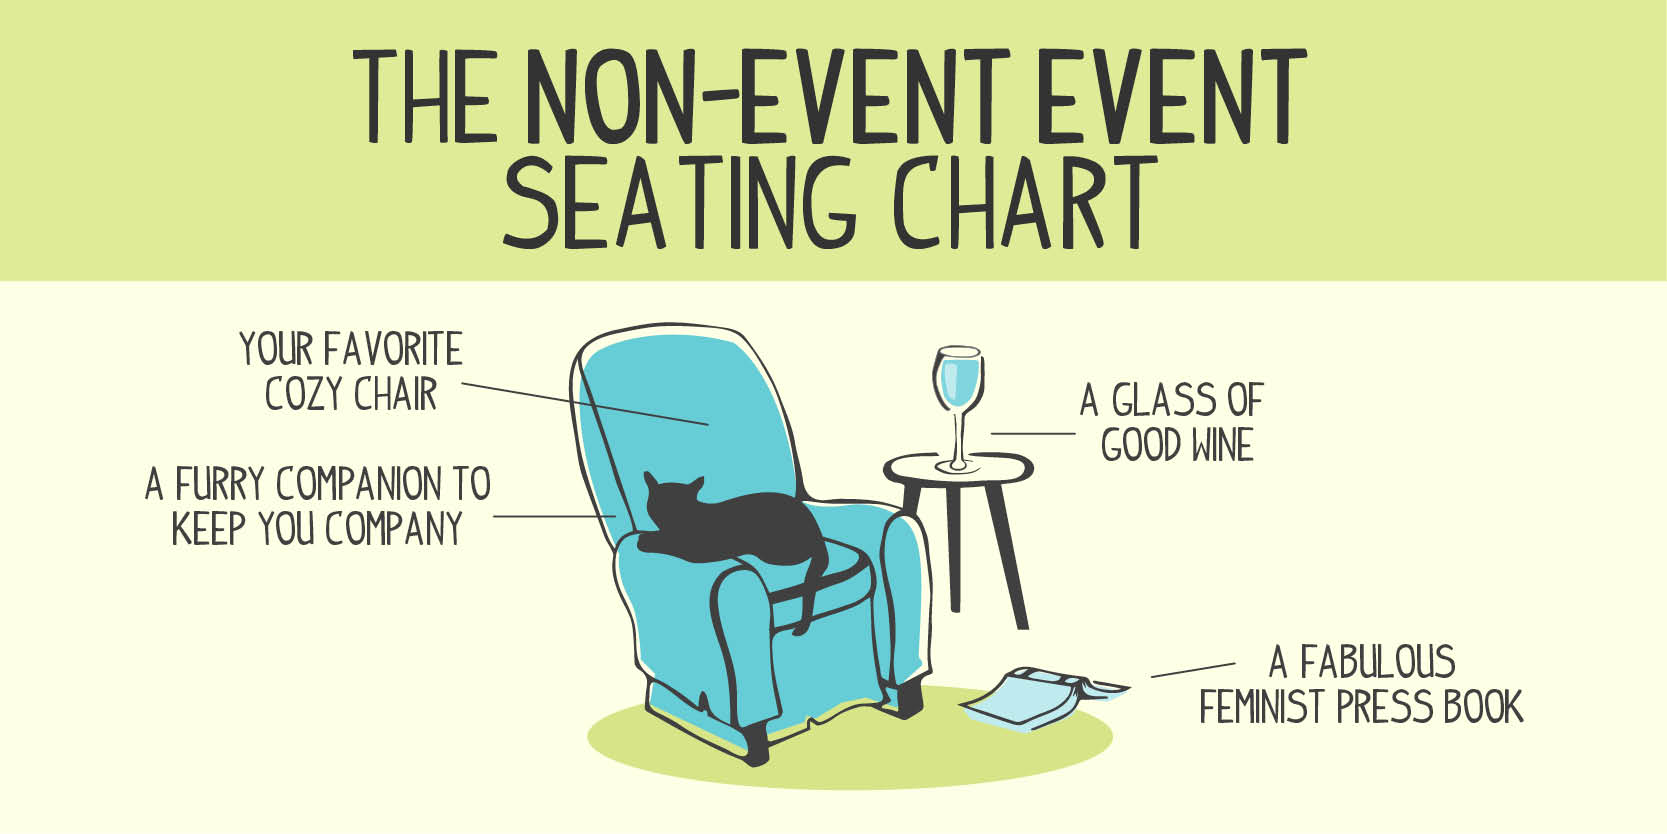 2017_FP_NON-EVENT_SEATING_CHART.jpg